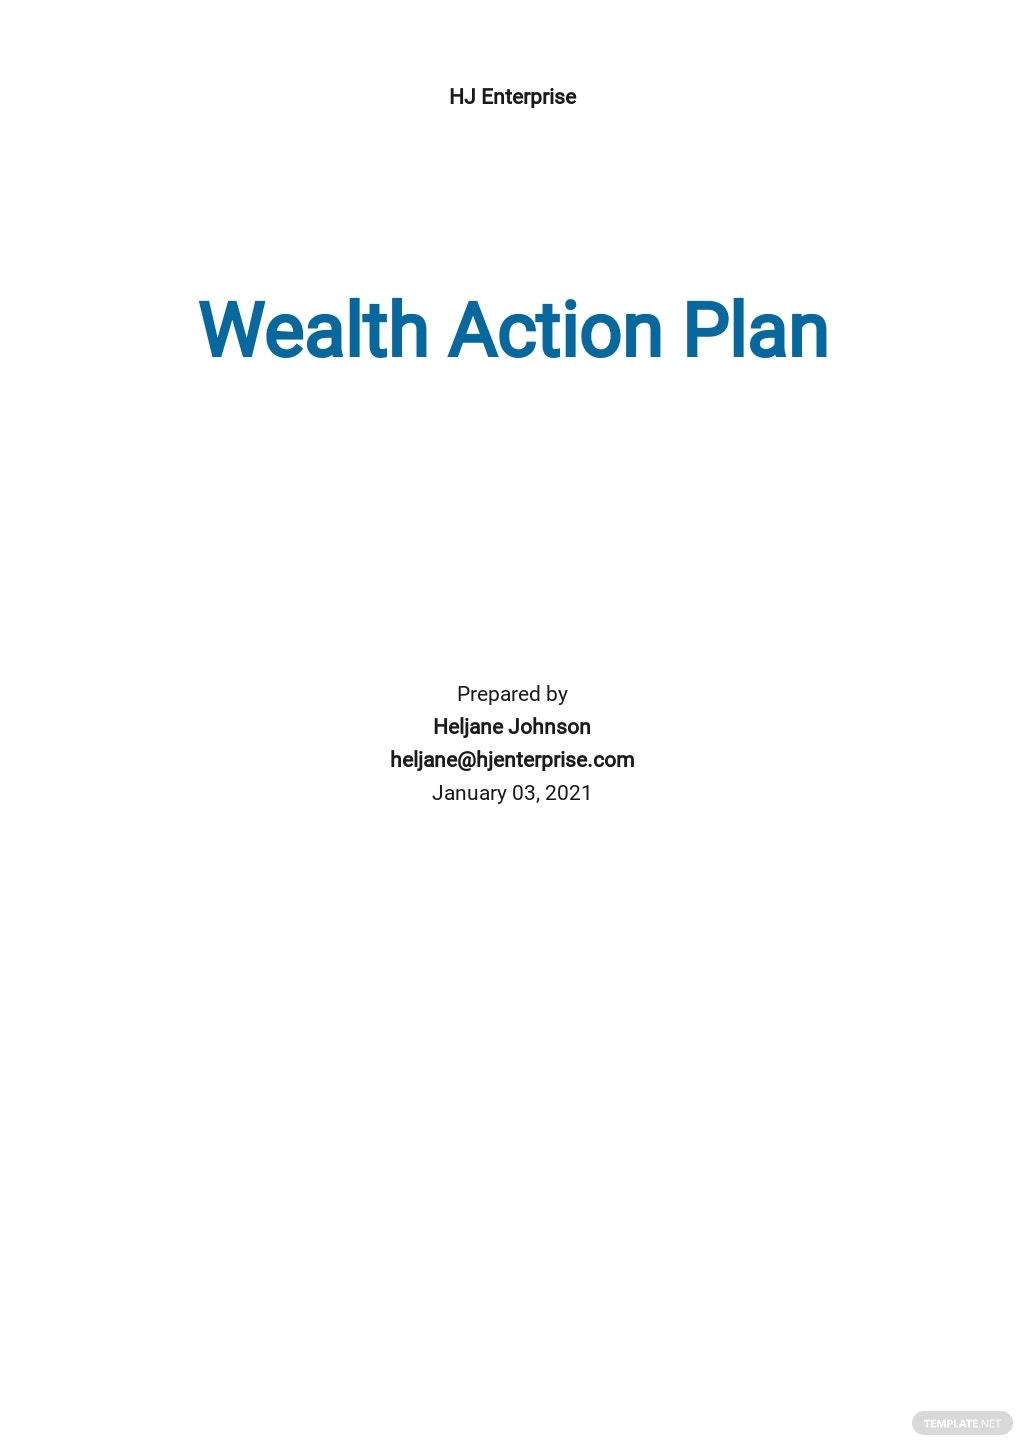 Wealth Action Plan Template.jpe